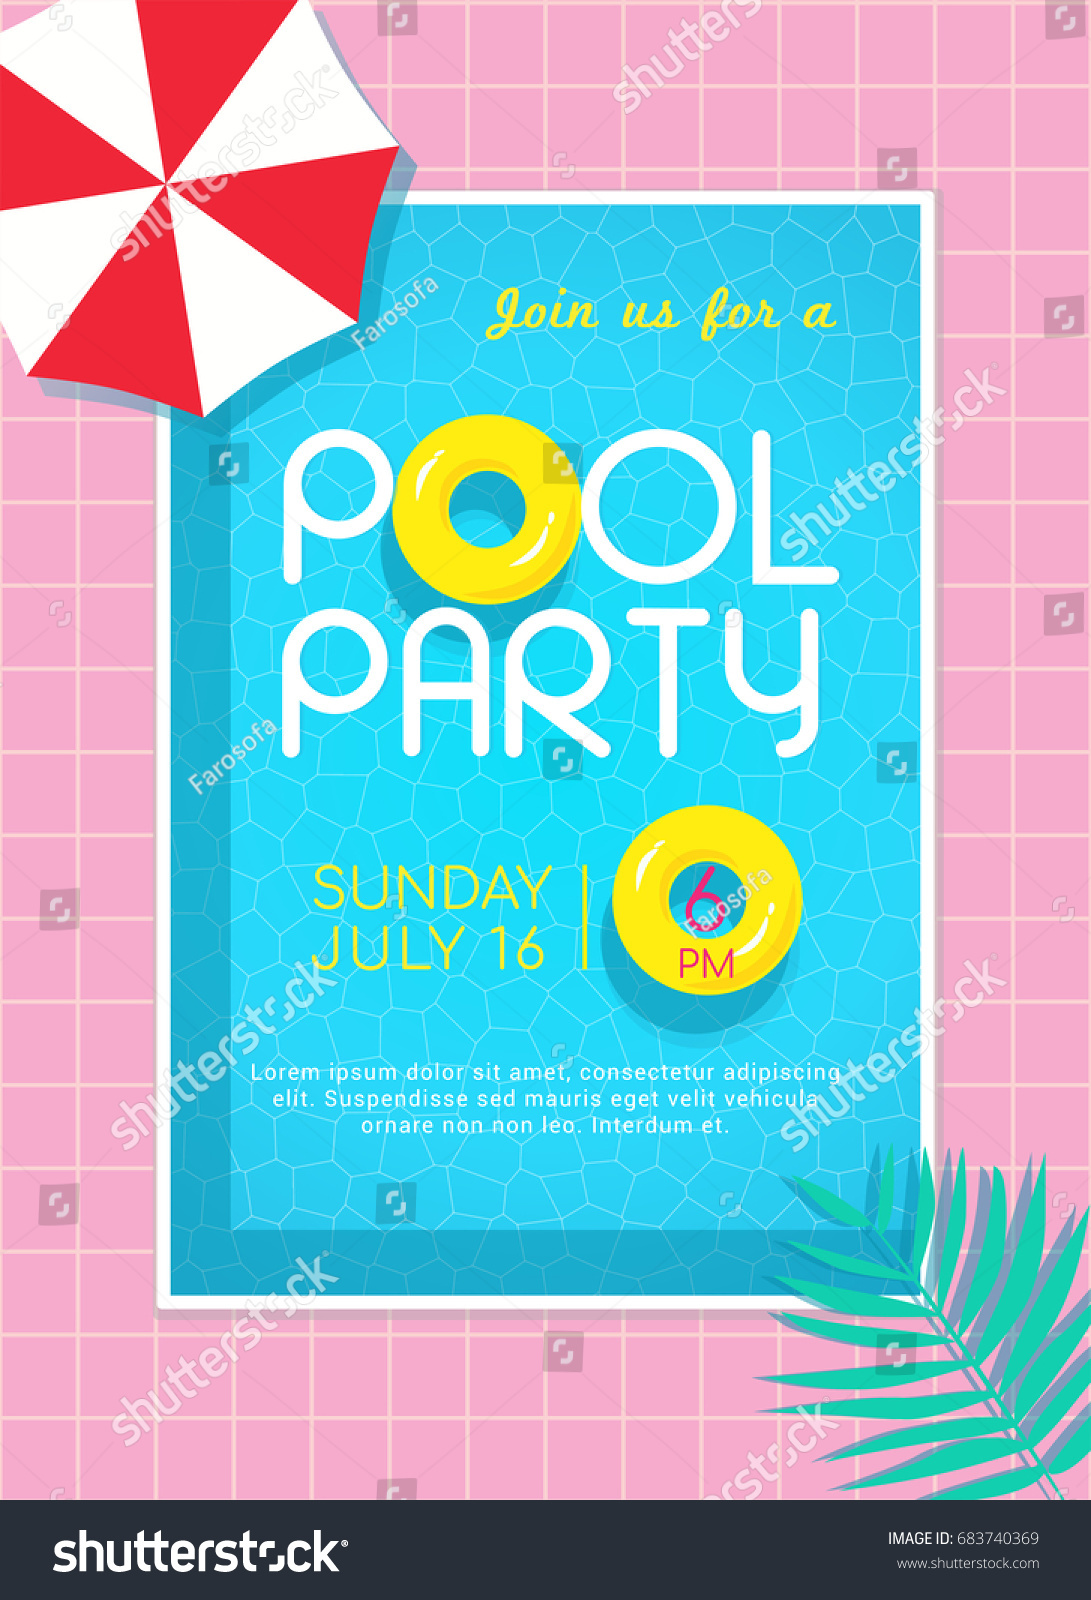 Pool Party Invitation Vector Illustration, Top View Of Swimming Pool With  Yellow Rubber Ring Floating